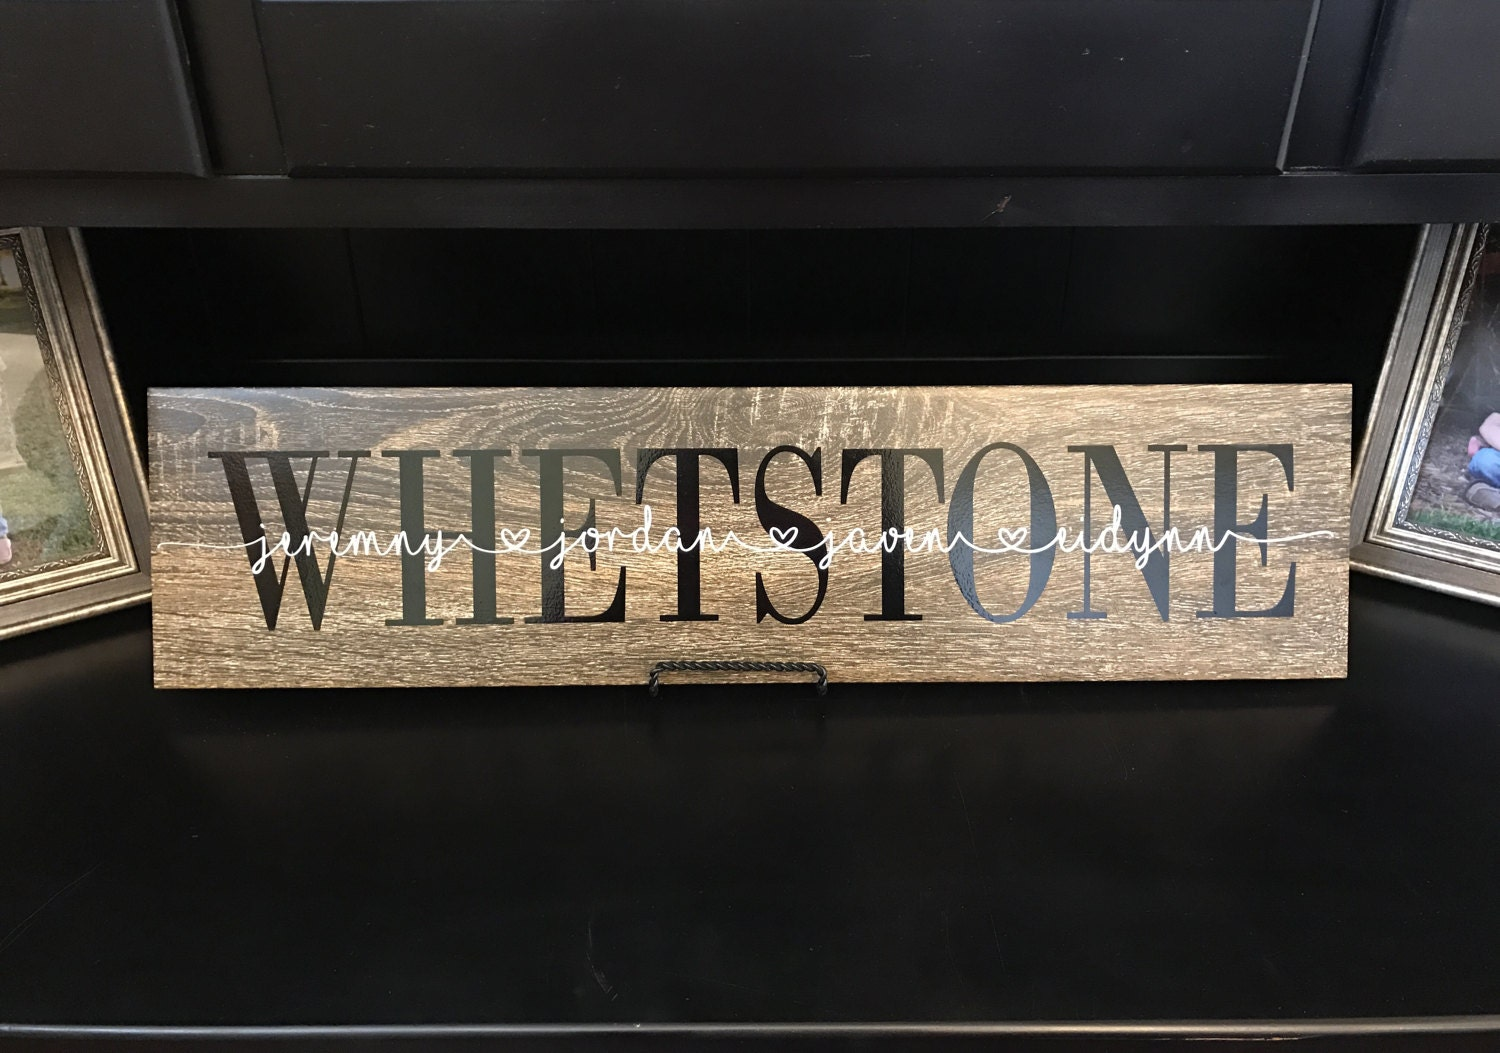 Personalized ceramic wood tile sign last name faux wood sign personalized ceramic wood tile sign last name faux wood sign oak style wood tile sign family names wall decor dailygadgetfo Choice Image